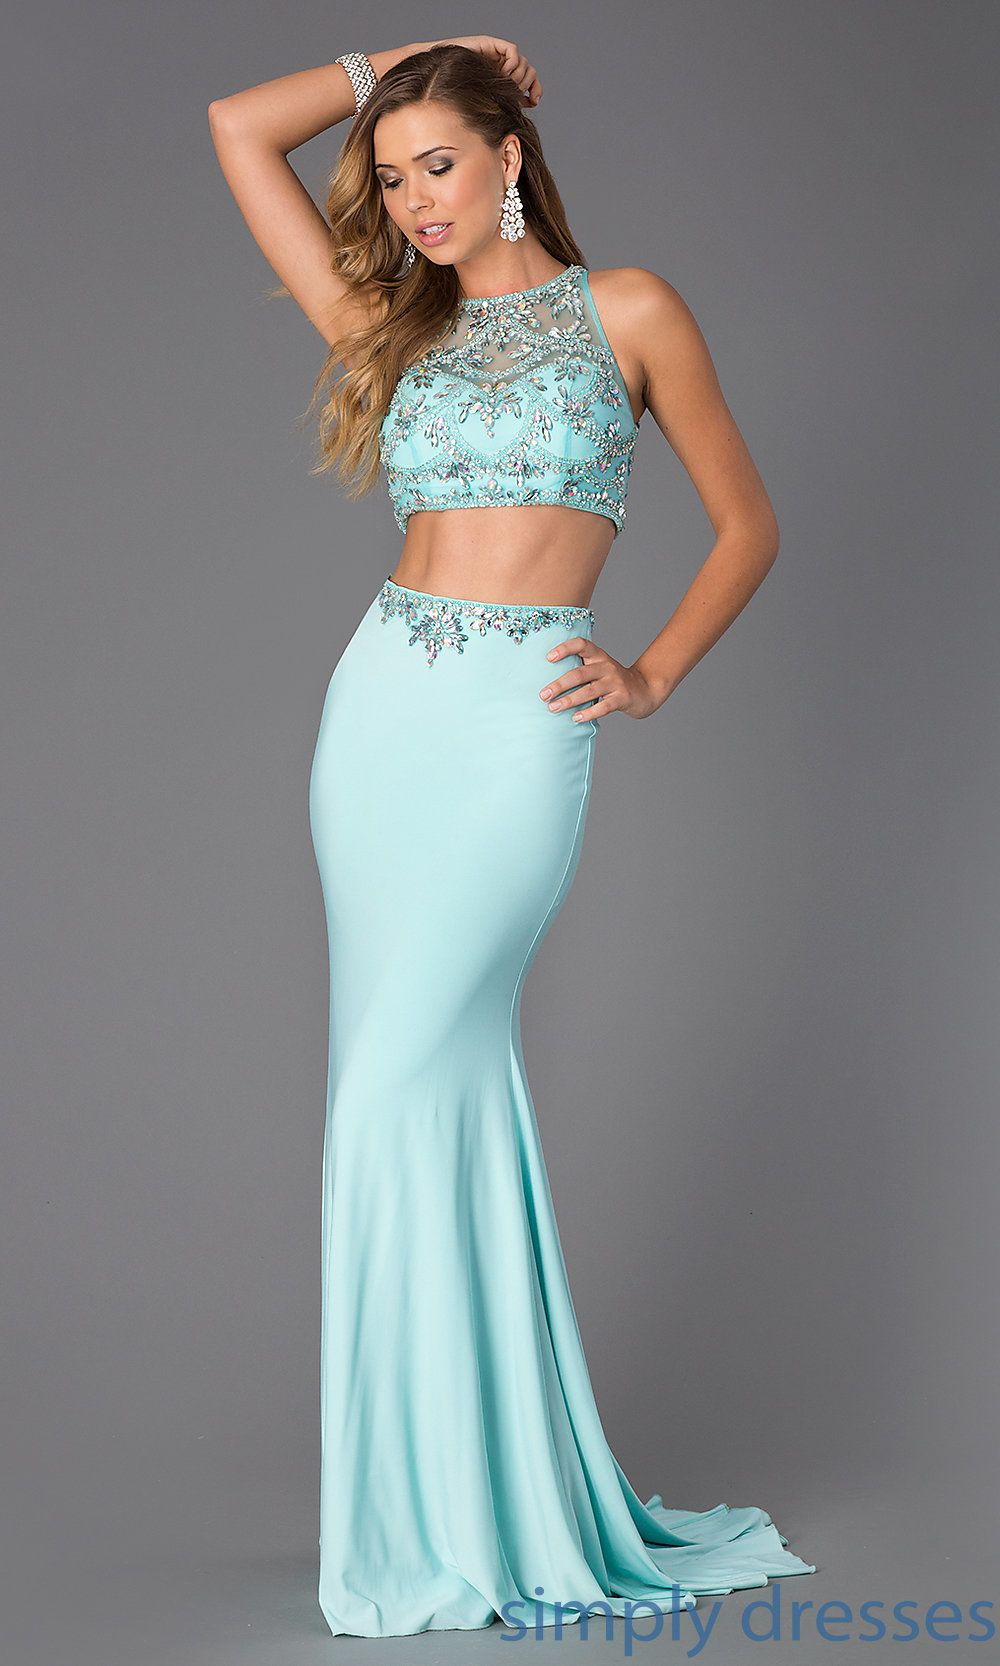 Floor Length Two-Piece Jeweled Prom Dress CD-1126 | Bedazzle me ...